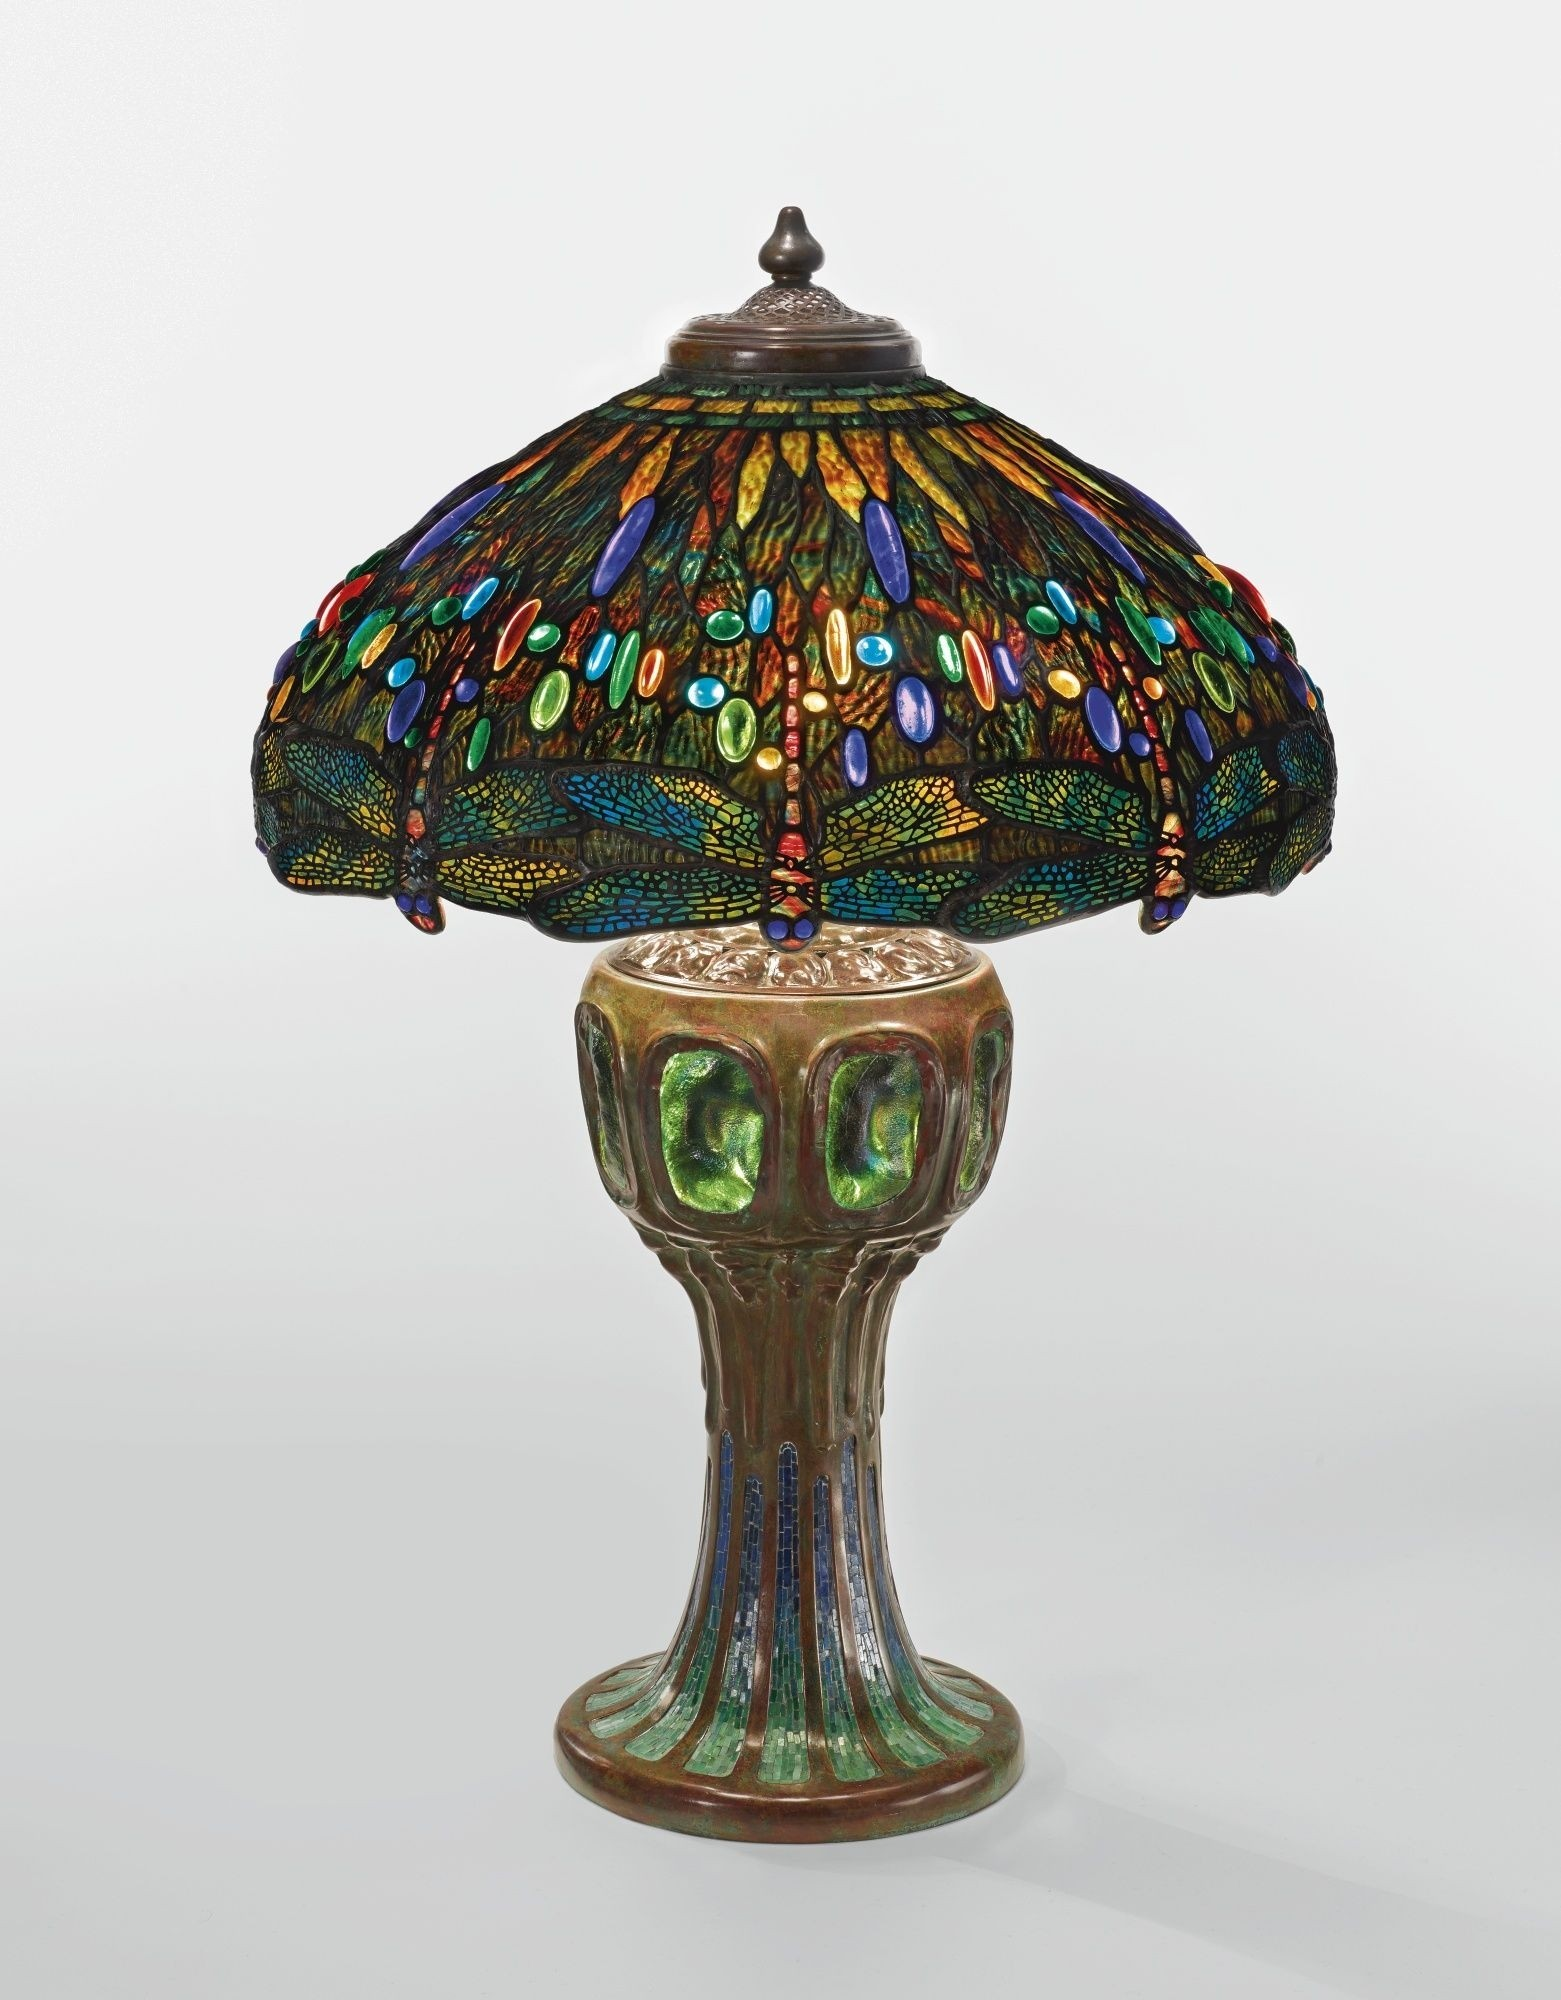 Dragonfly Tiffany Lamp Stained Glass Table Lamp 6